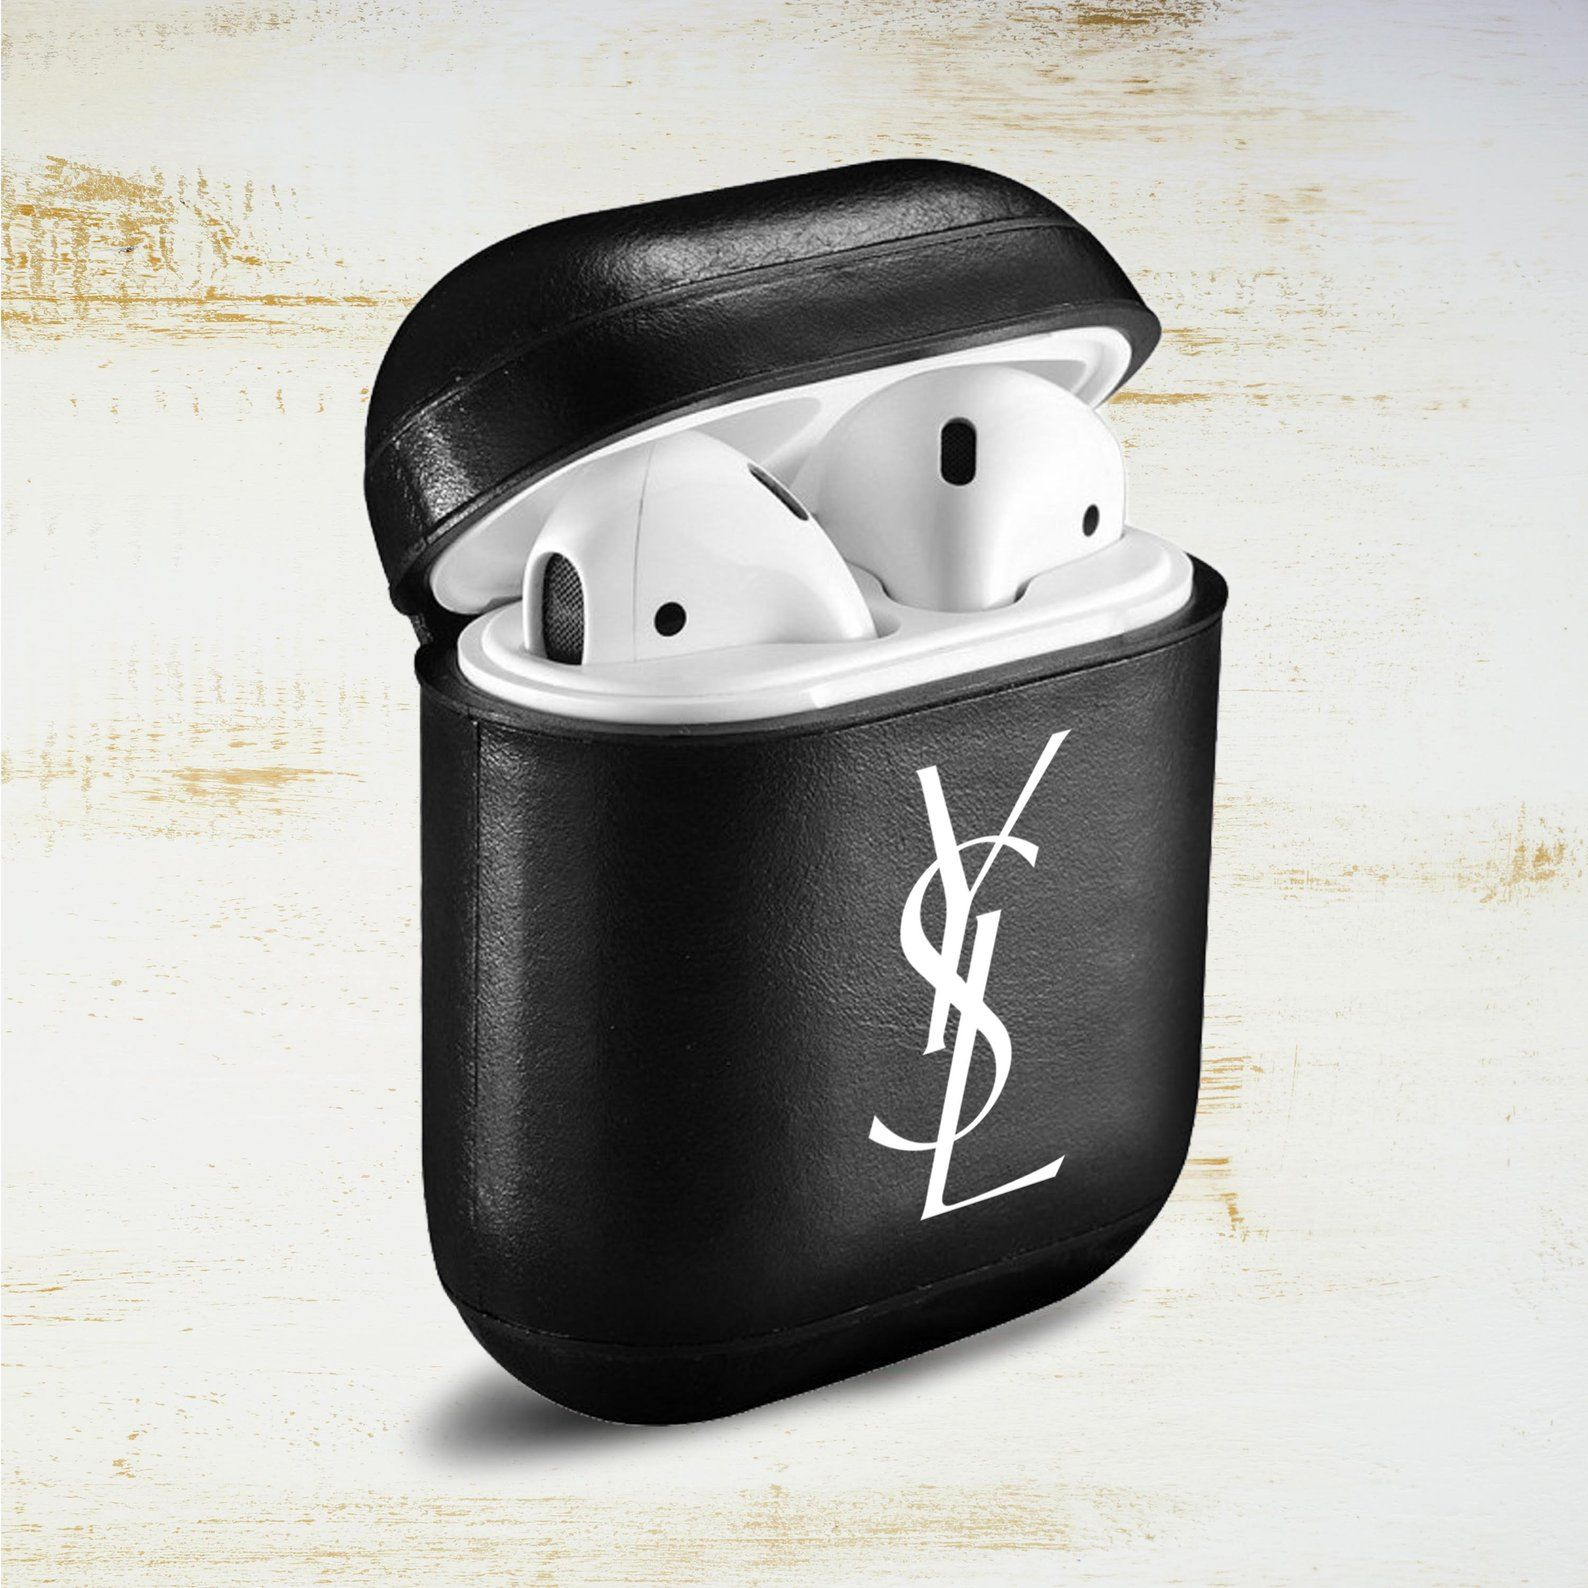 8fe1e065cac Inspired by yves saint laurent AirPod Case Apple AirPods logo   Etsy